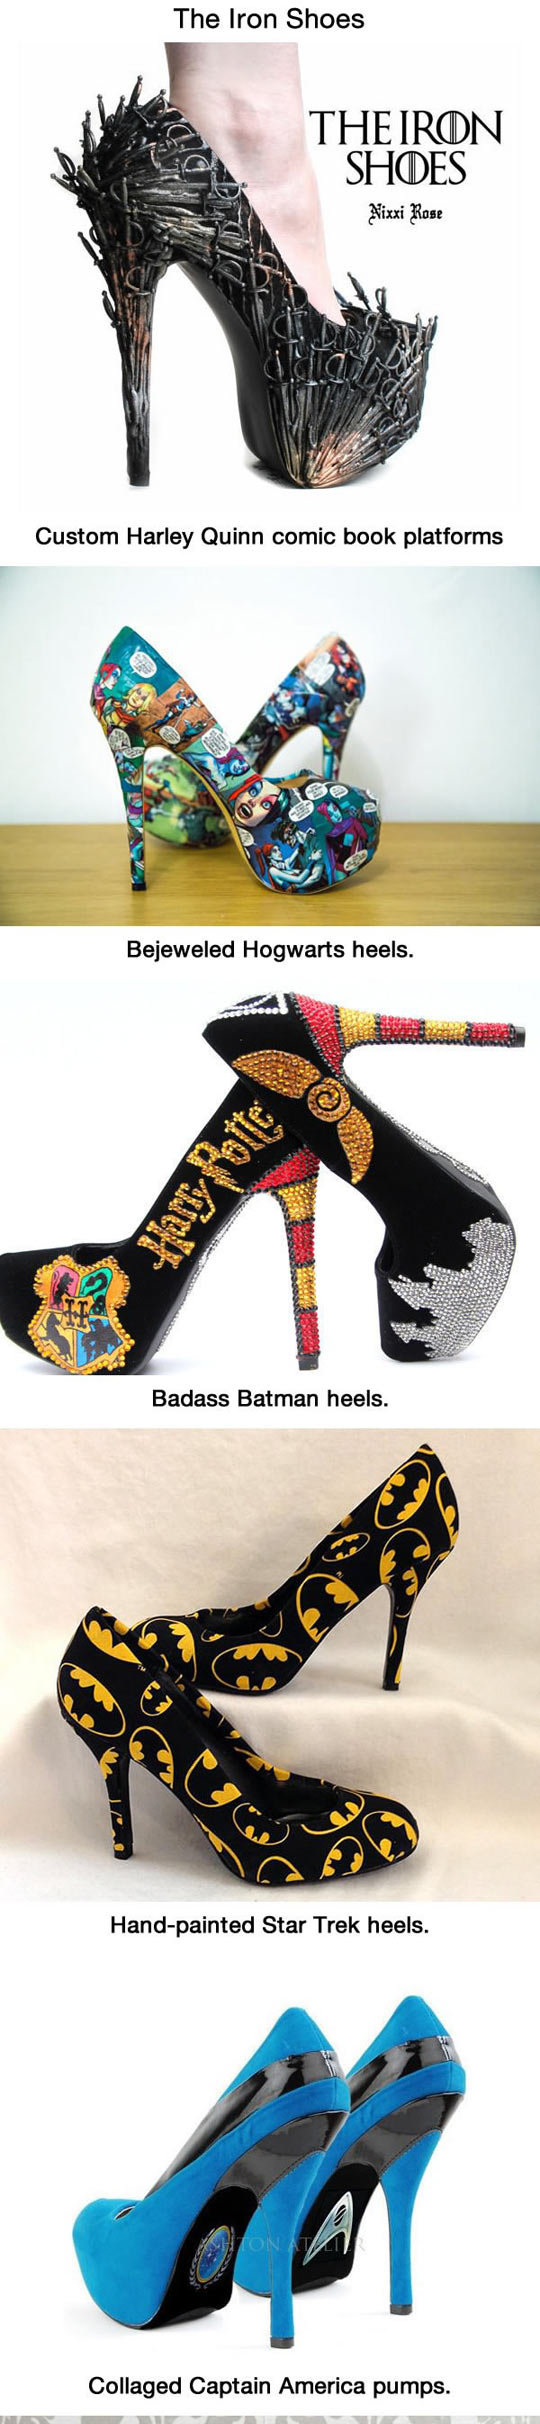 funny-shoes-fan-made-geek-GoT